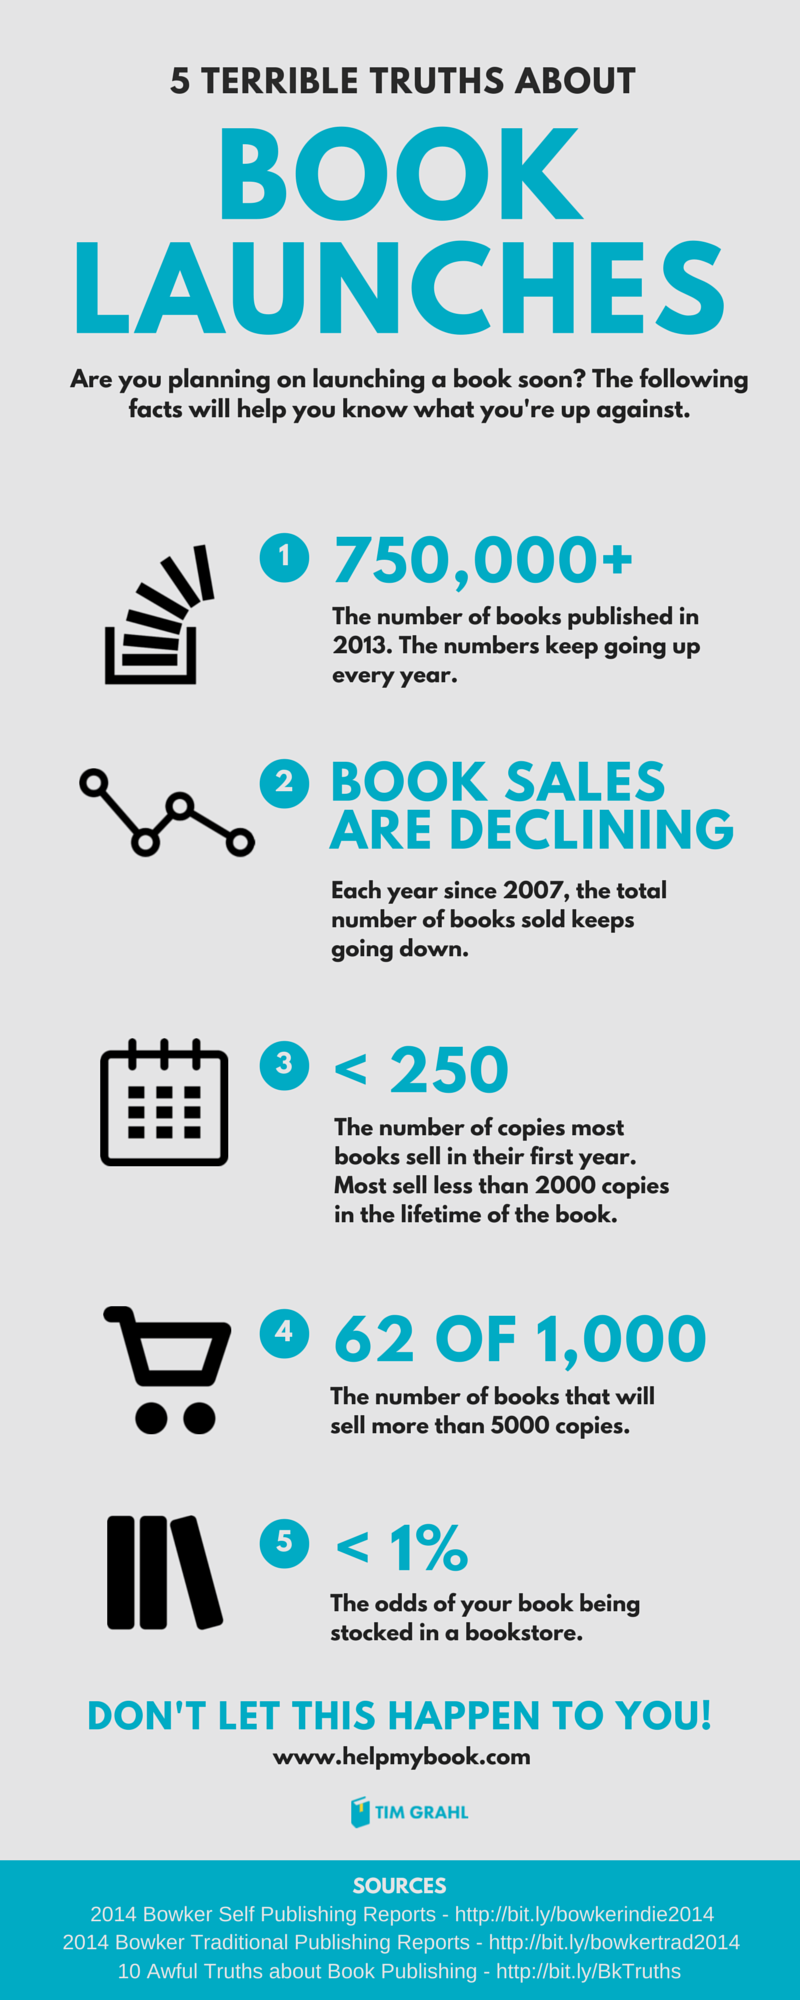 5 Terrible Truths About Book Launches